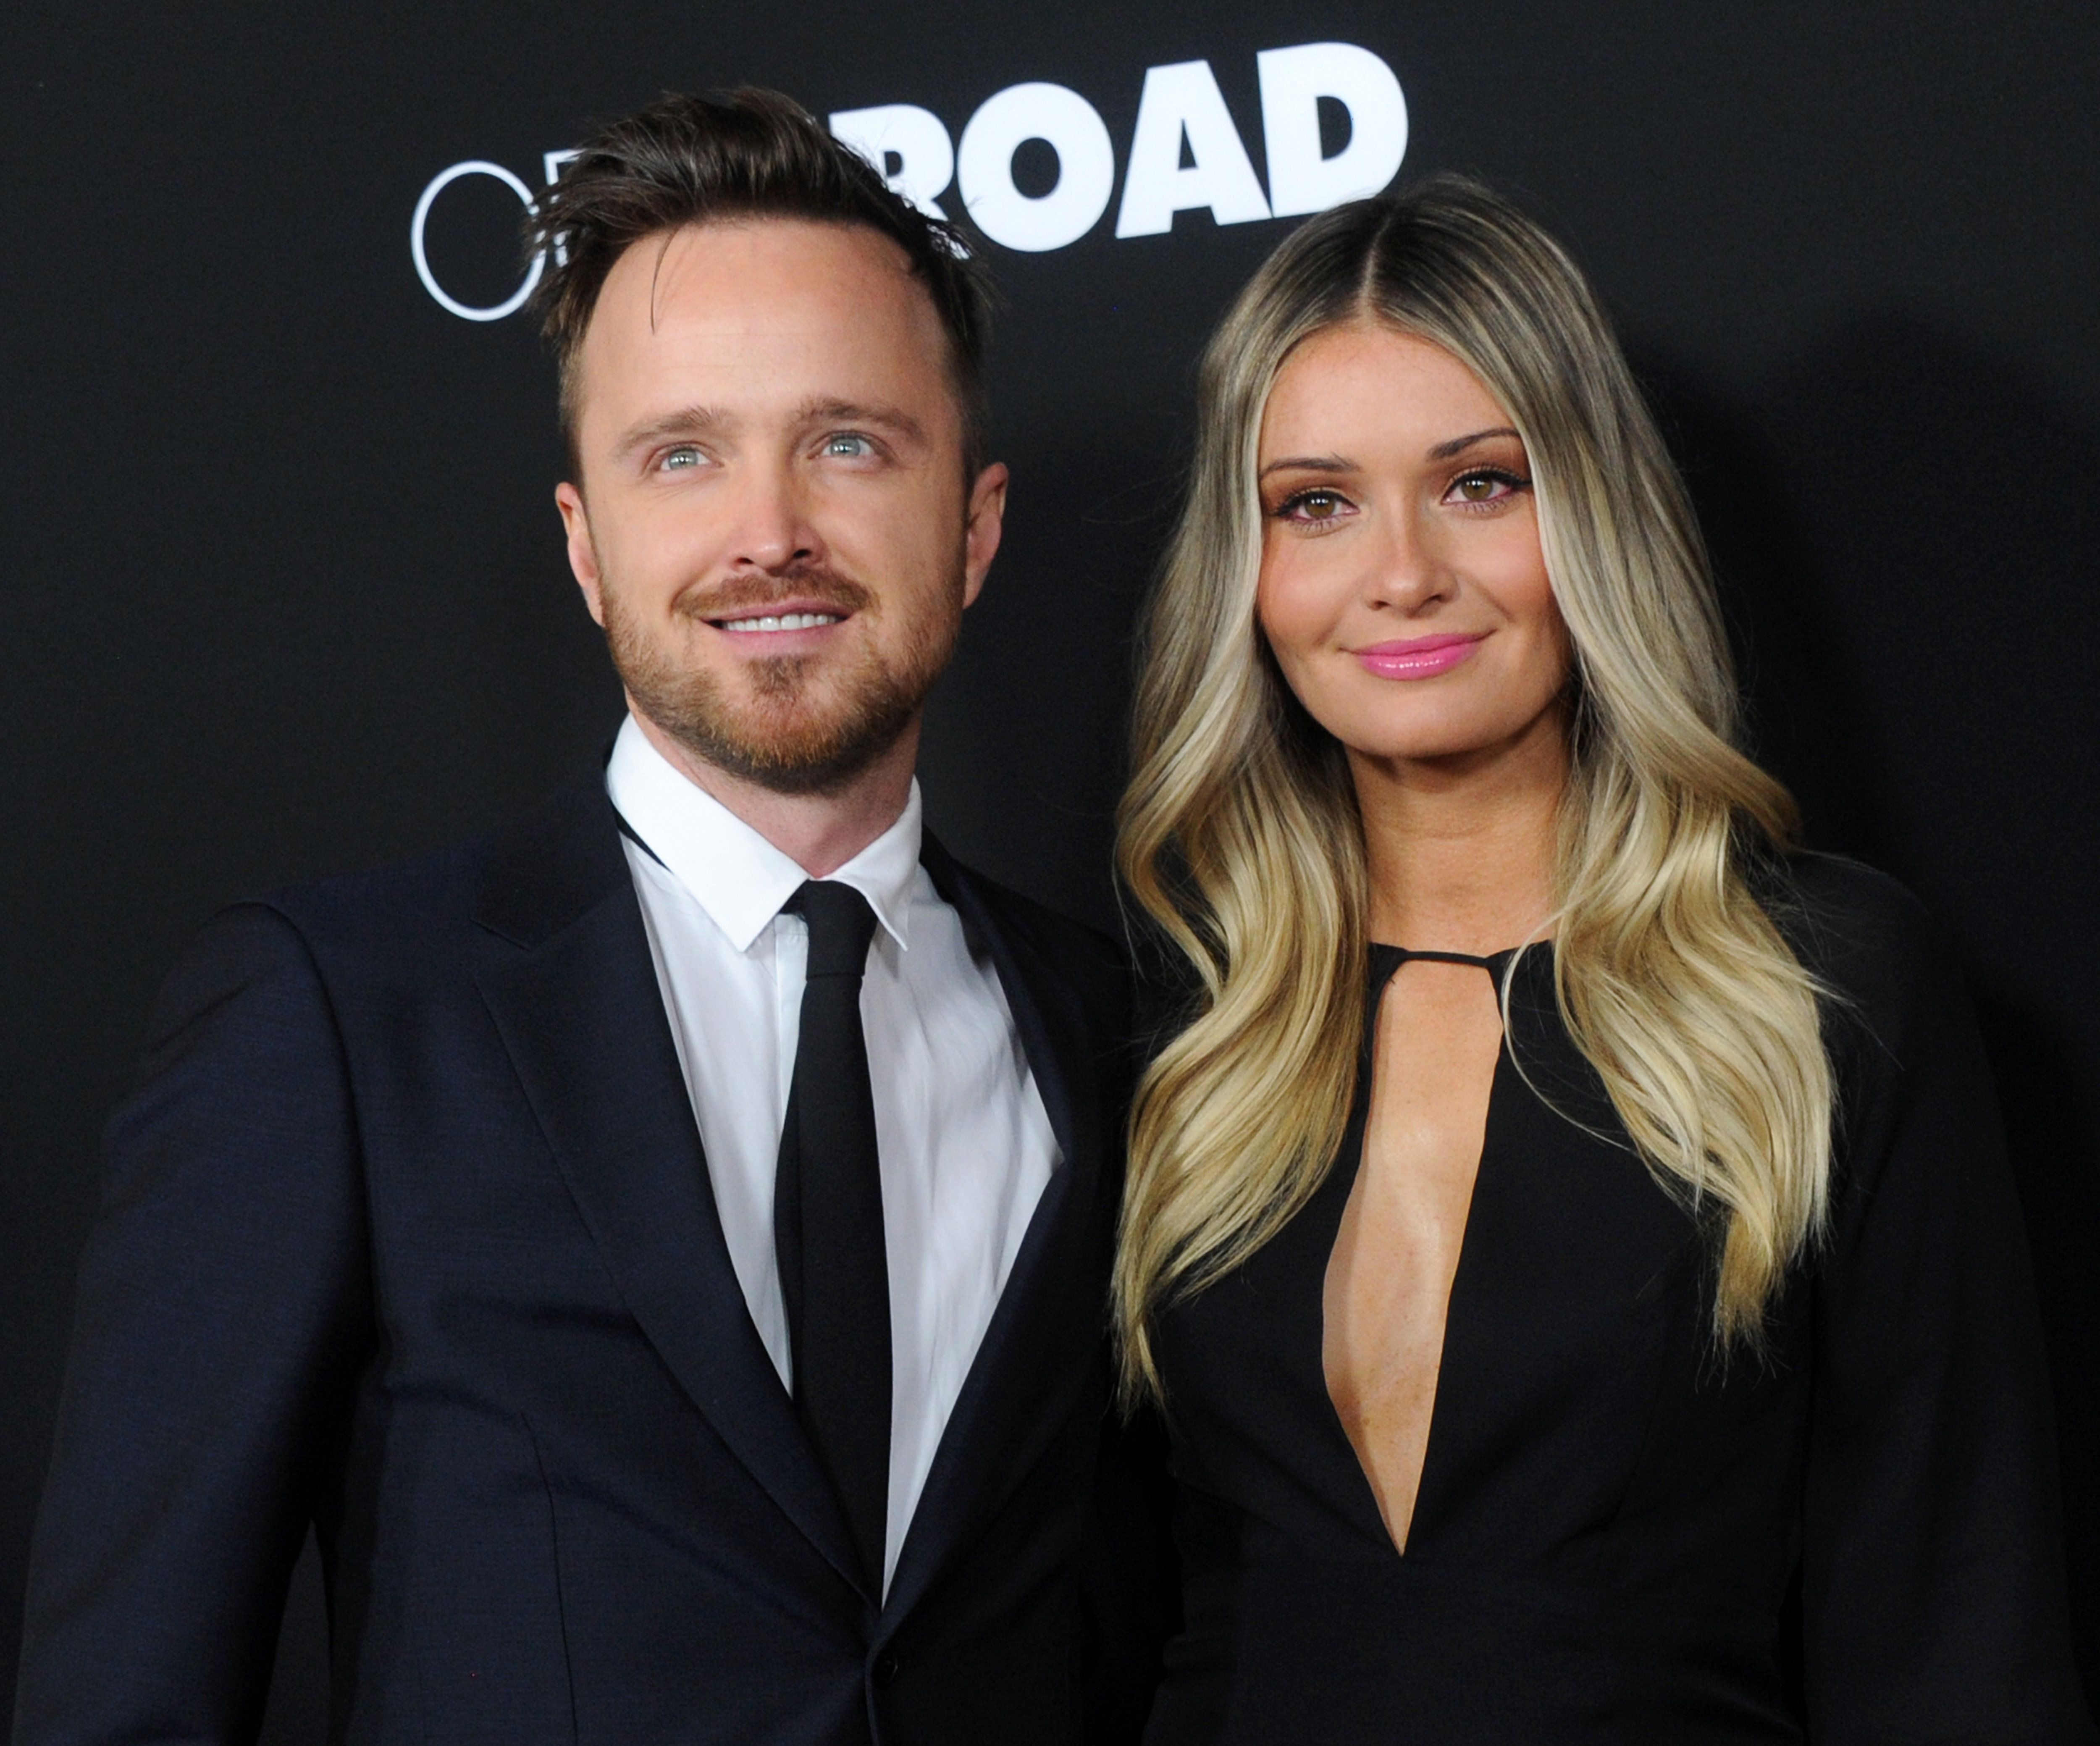 LOS ANGELES, CA - FEBRUARY 16:  Actor Aaron Paul and wife Lauren Parsekian arrive at the premiere of Open Road's 'Triple 9' at Regal Cinemas L.A. Live on February 16, 2016 in Los Angeles, California.  (Photo by Gregg DeGuire/WireImage)